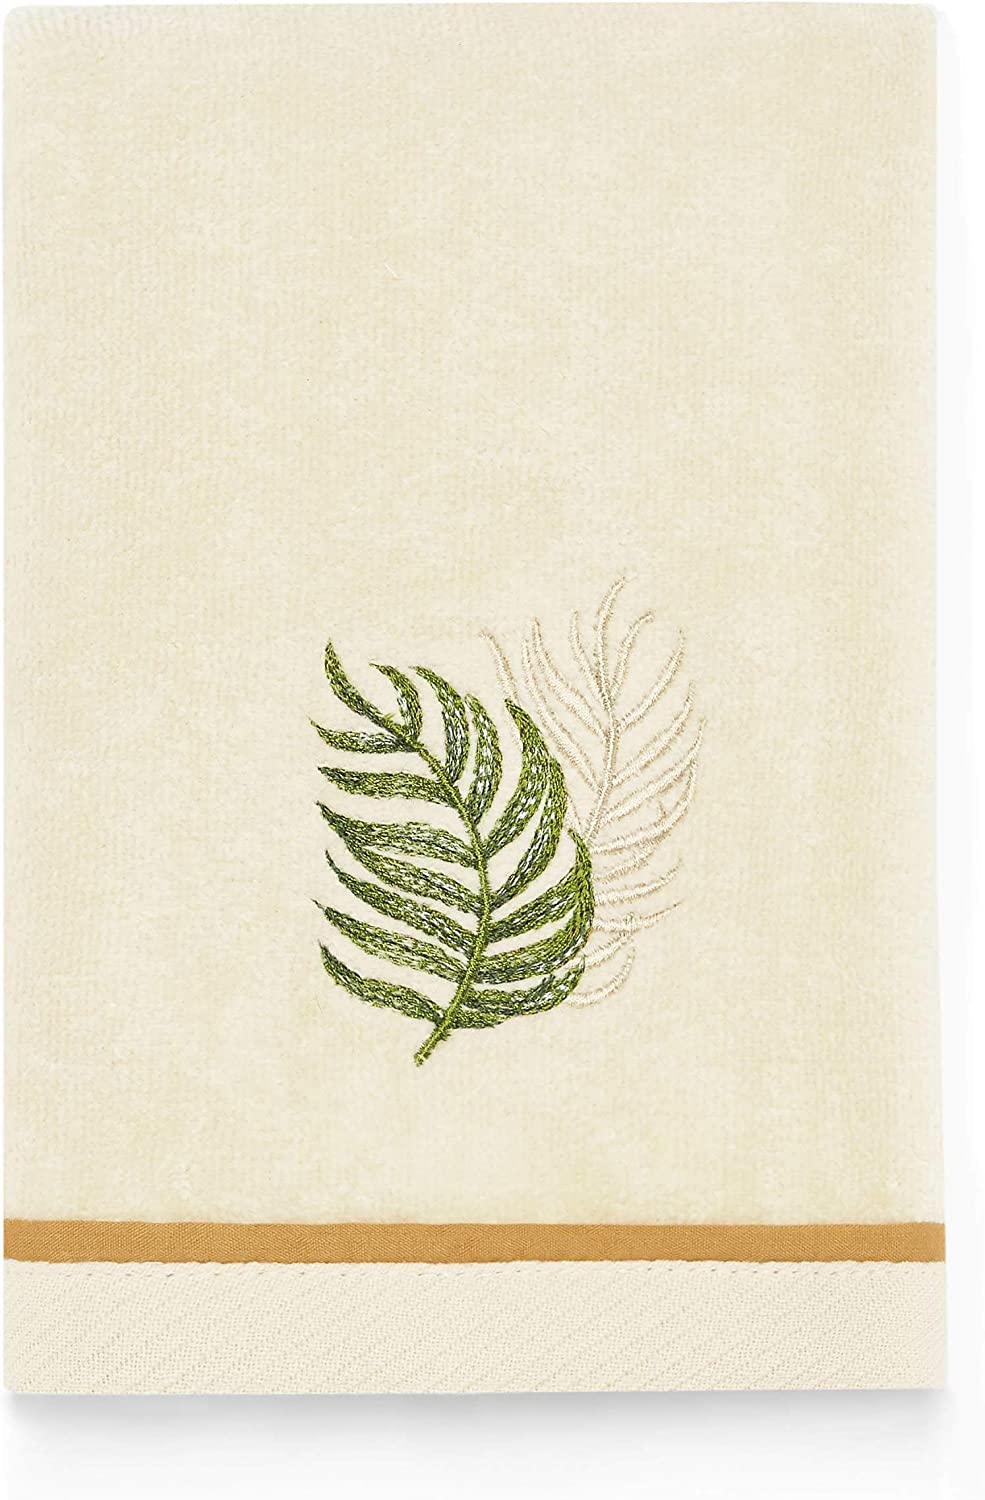 High material Tommy Bahama Palmiers Fingertip Towel Ivory 18 11 x New popularity